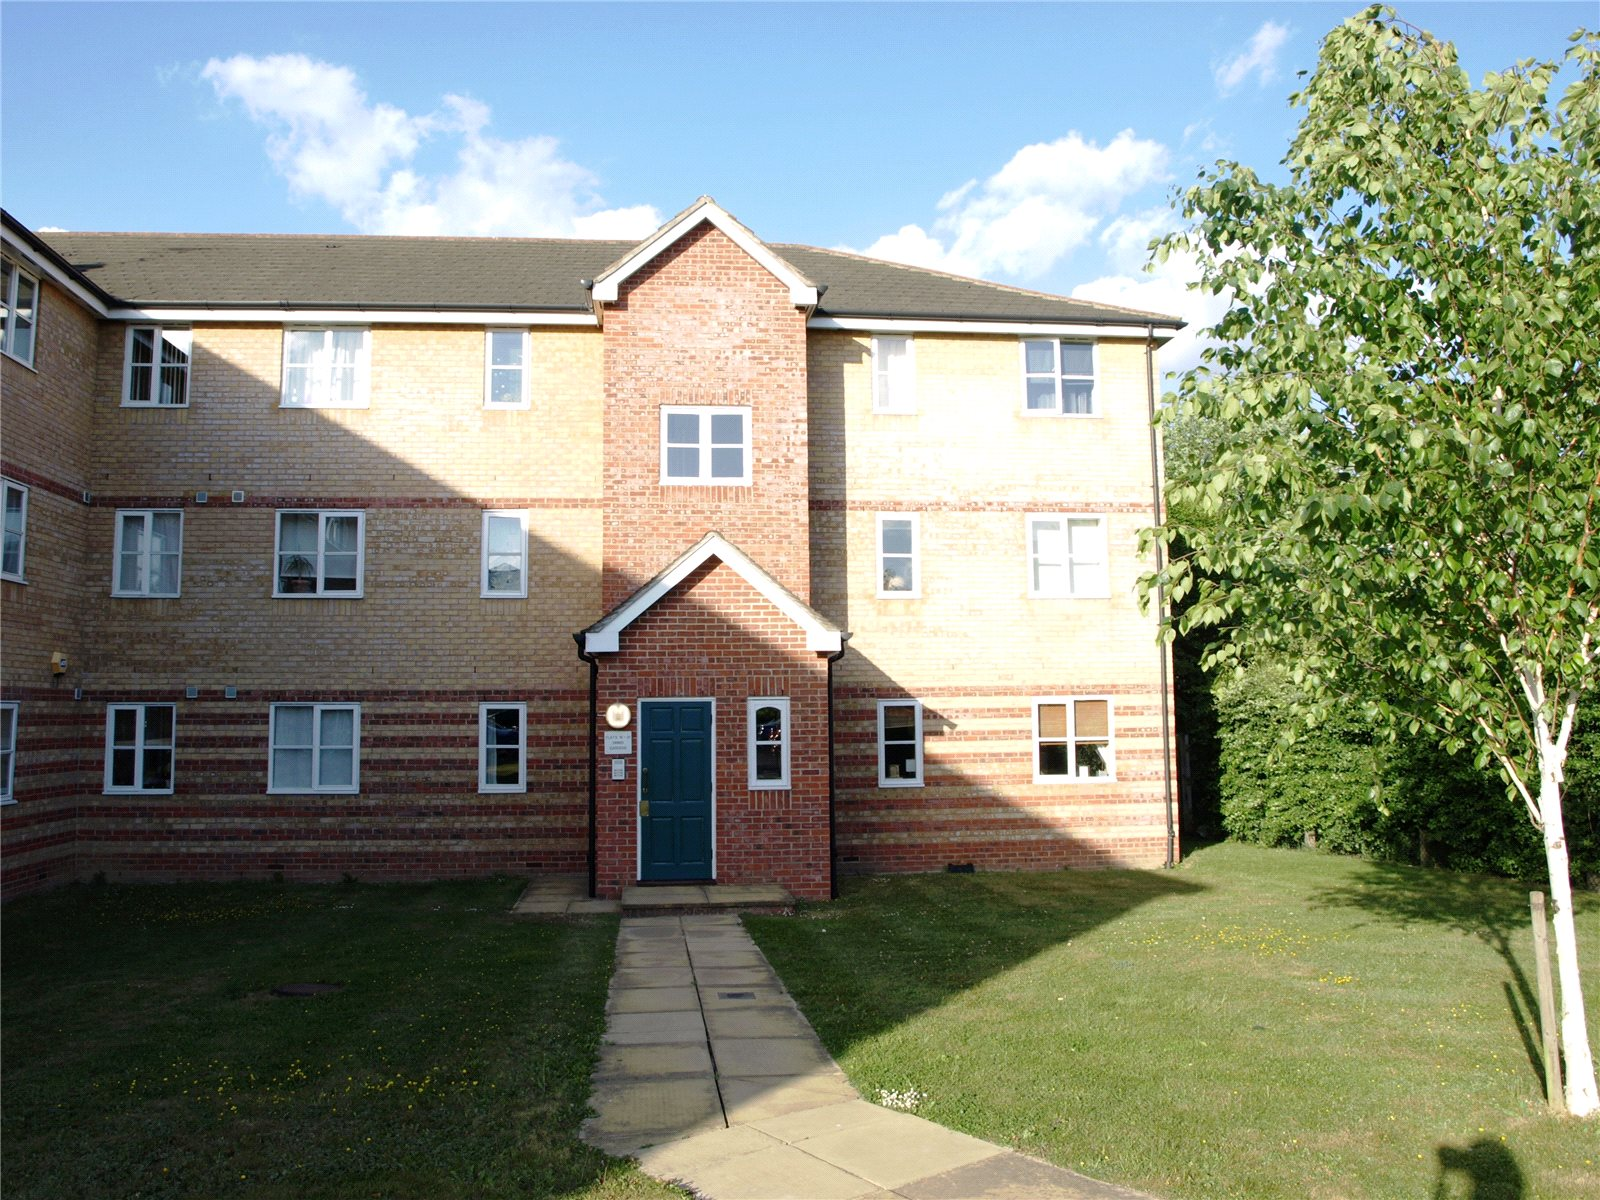 2 Bedroom Flat For Sale In Simms Gardens East Finchley